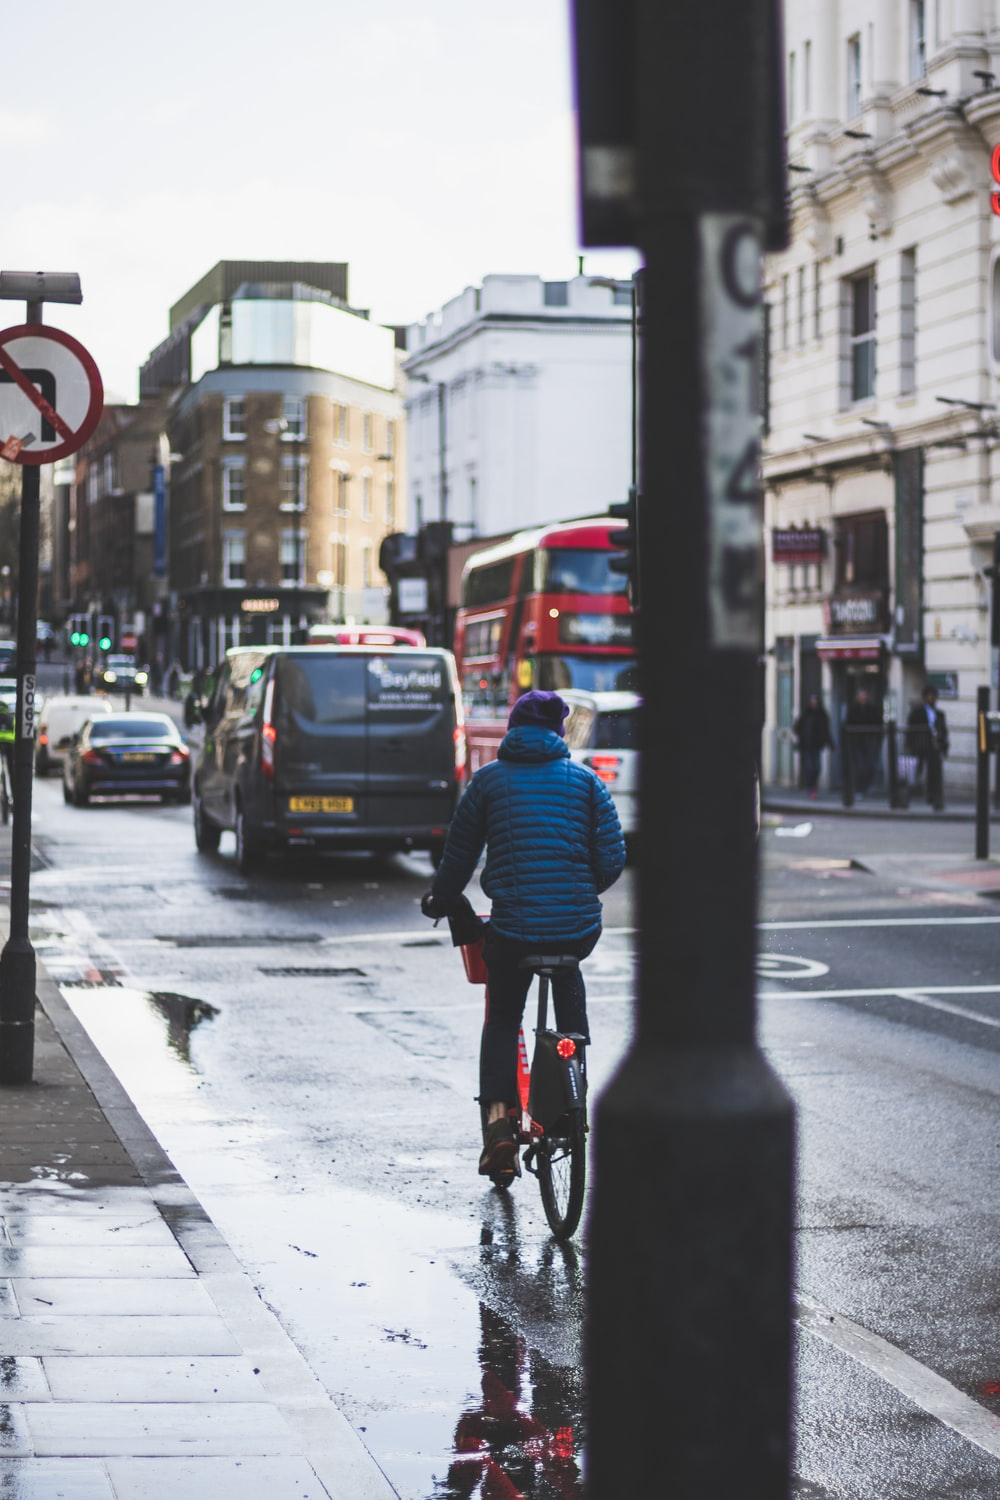 man in blue jacket riding bicycle on road during daytime